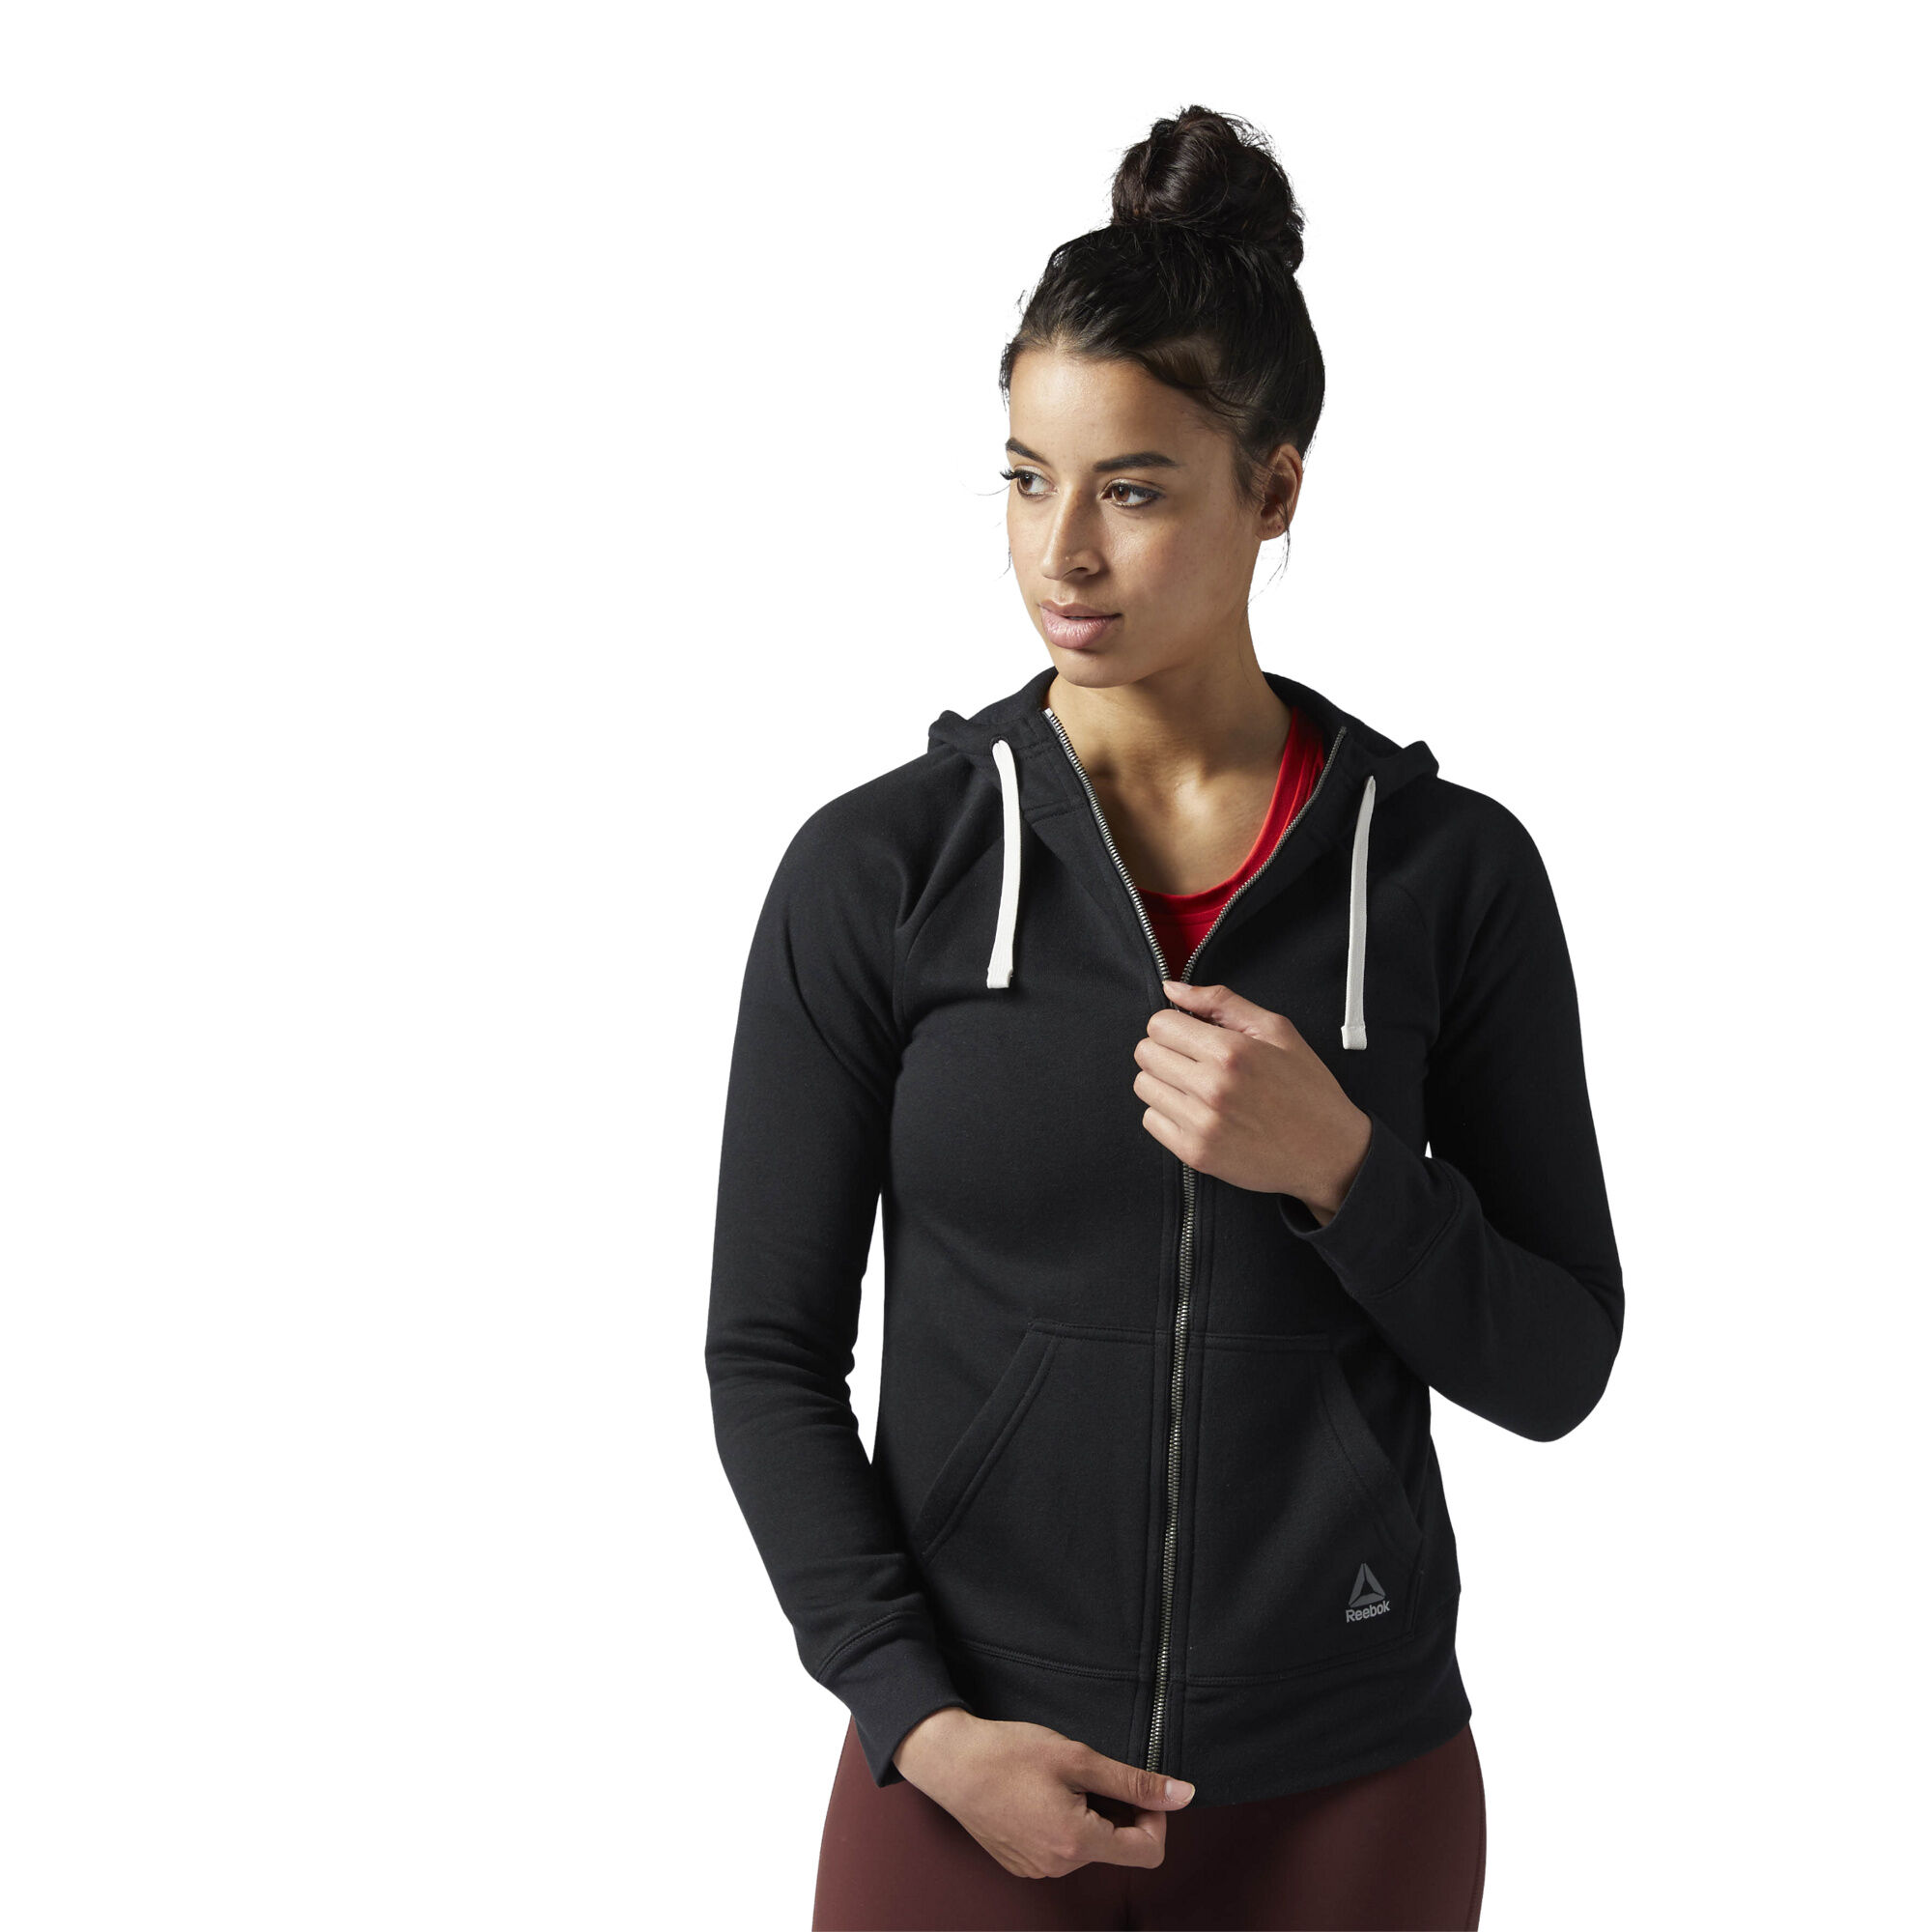 Reebok Women's Training Essentials Fleece Full Zip Hoodie in Black Size XS - Training Apparel